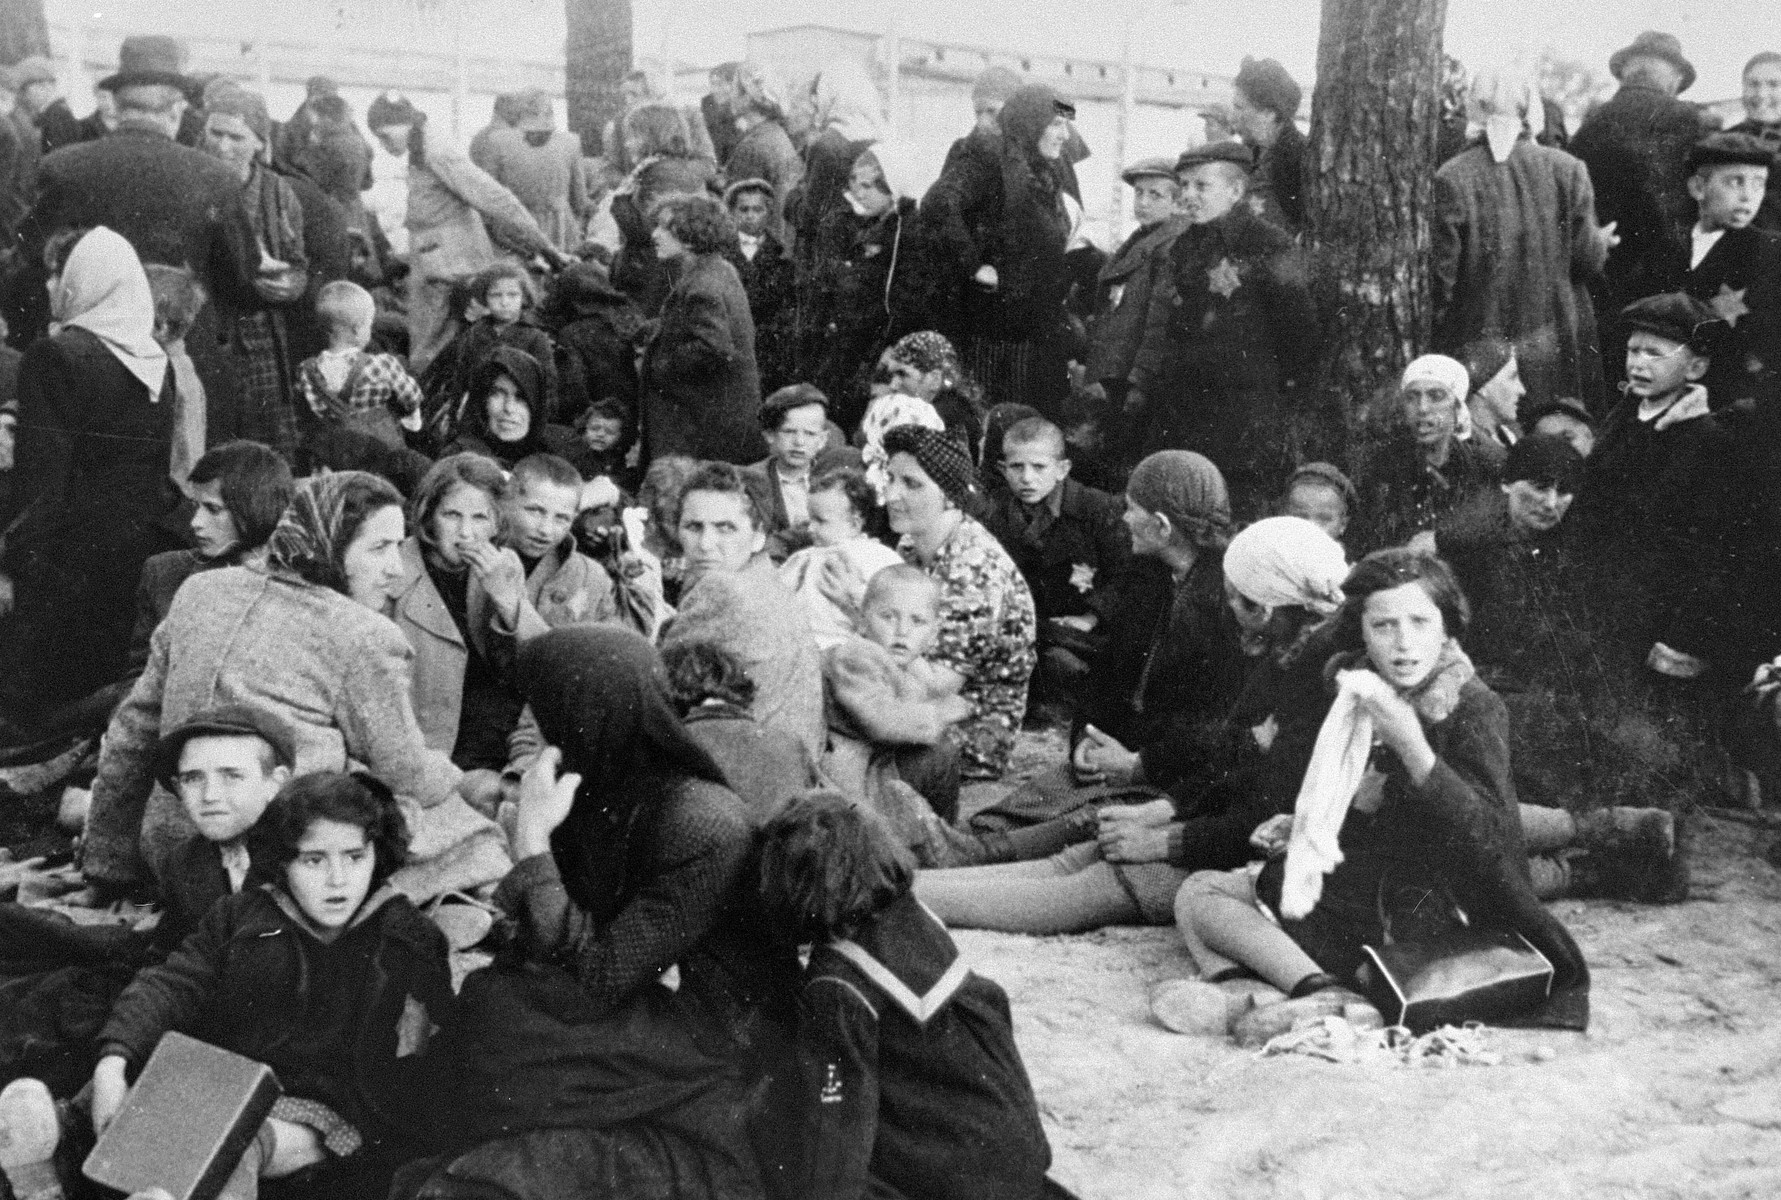 Jews from Subcarpathian Rus who have been selected for death at Auschwitz-Birkenau, wait to be taken to the gas chambers.